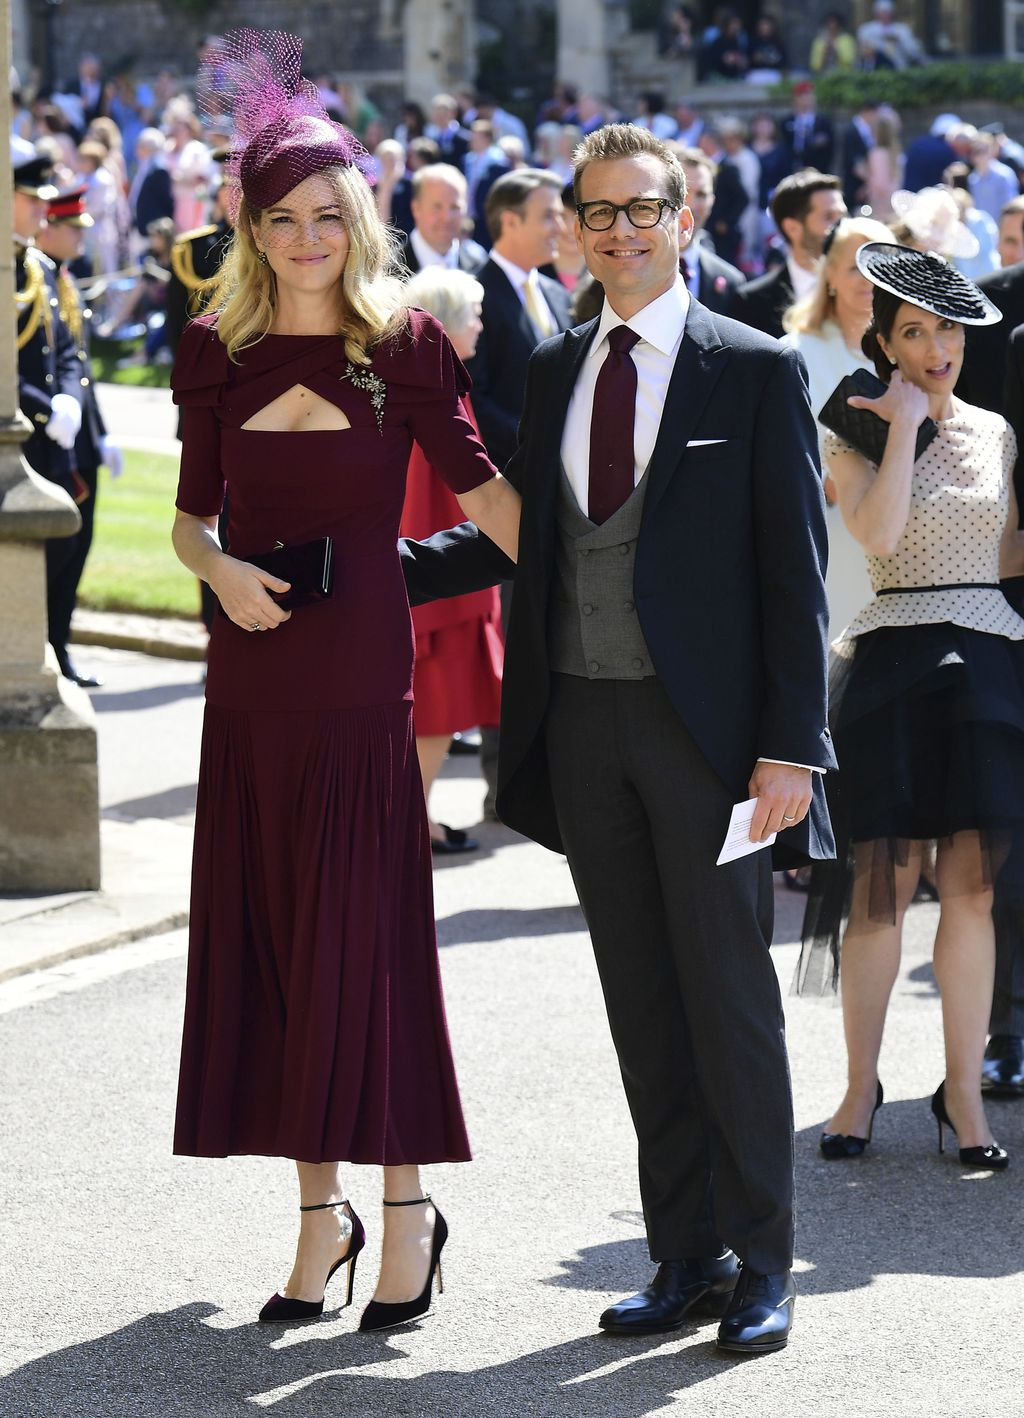 Aussie actress Jacinda Barrett with cut outs in all the right places, with husband and Meghan Markle's former Suits co-star<strong>&nbsp;</strong>Gabriel Macht photographed at the Royal wedding